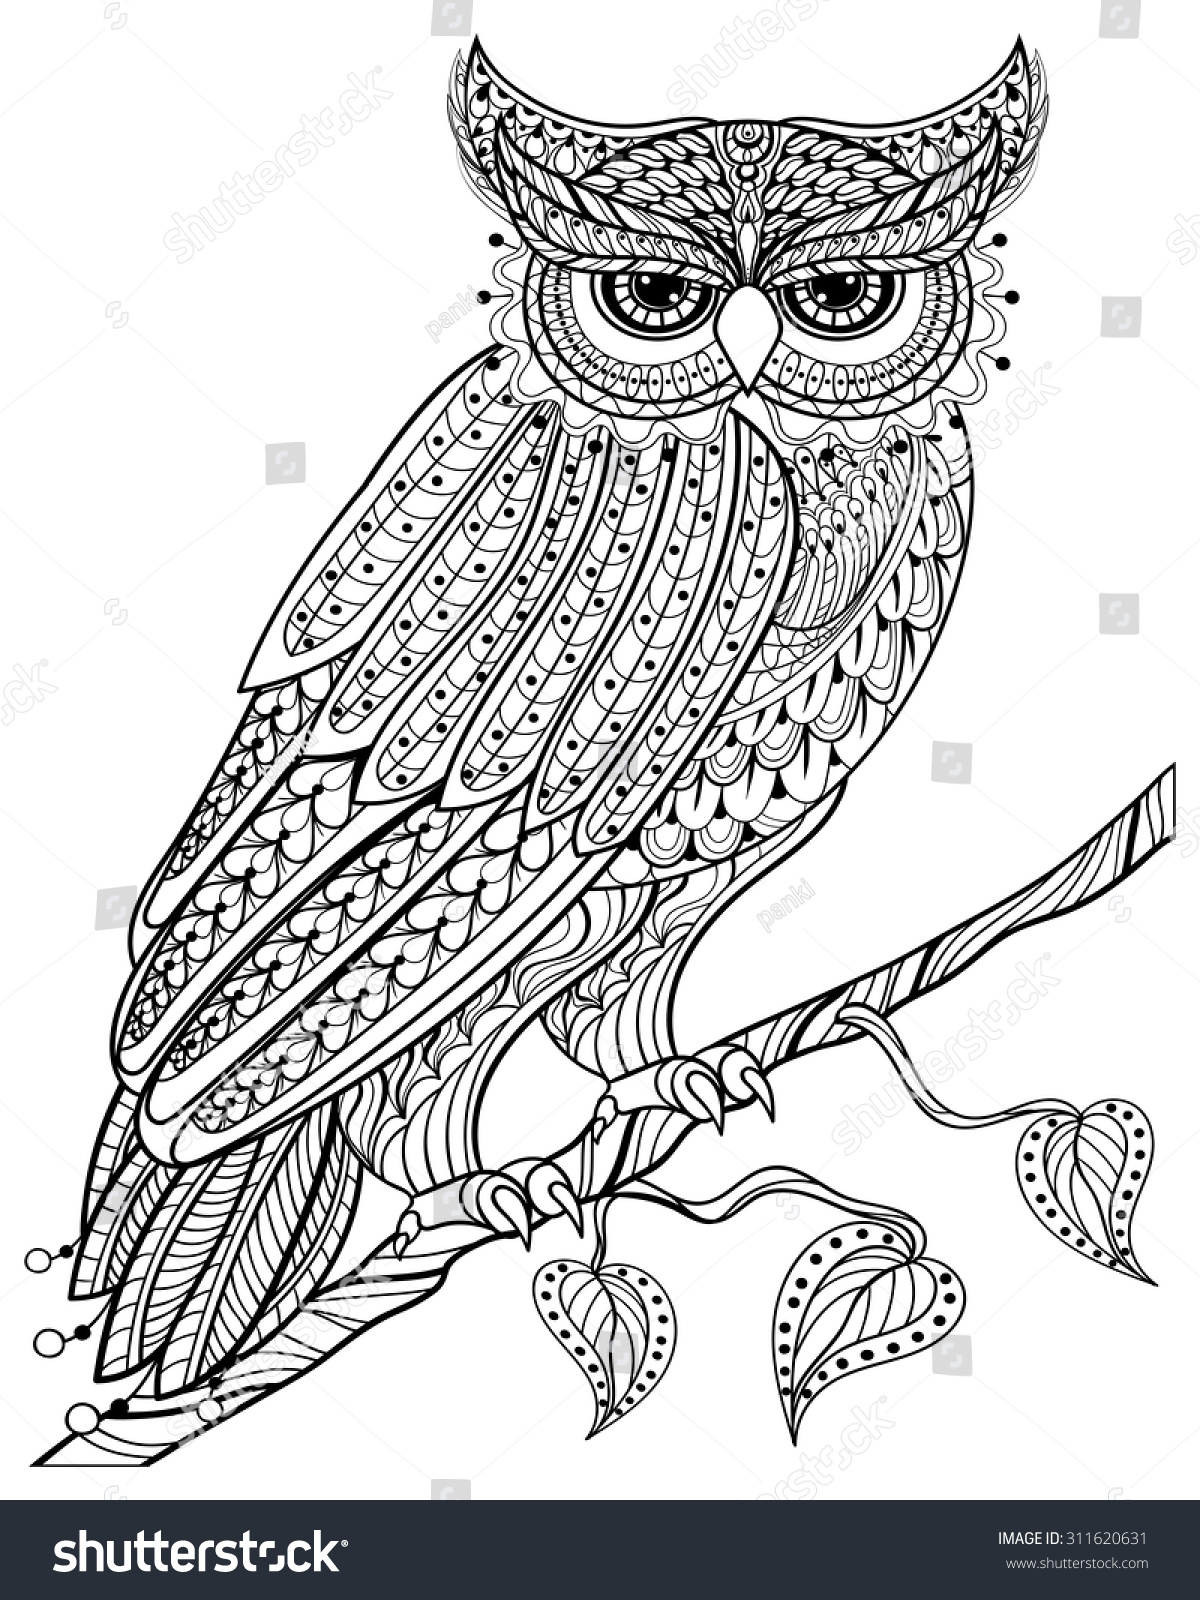 anti stress coloring pages owls - photo#10